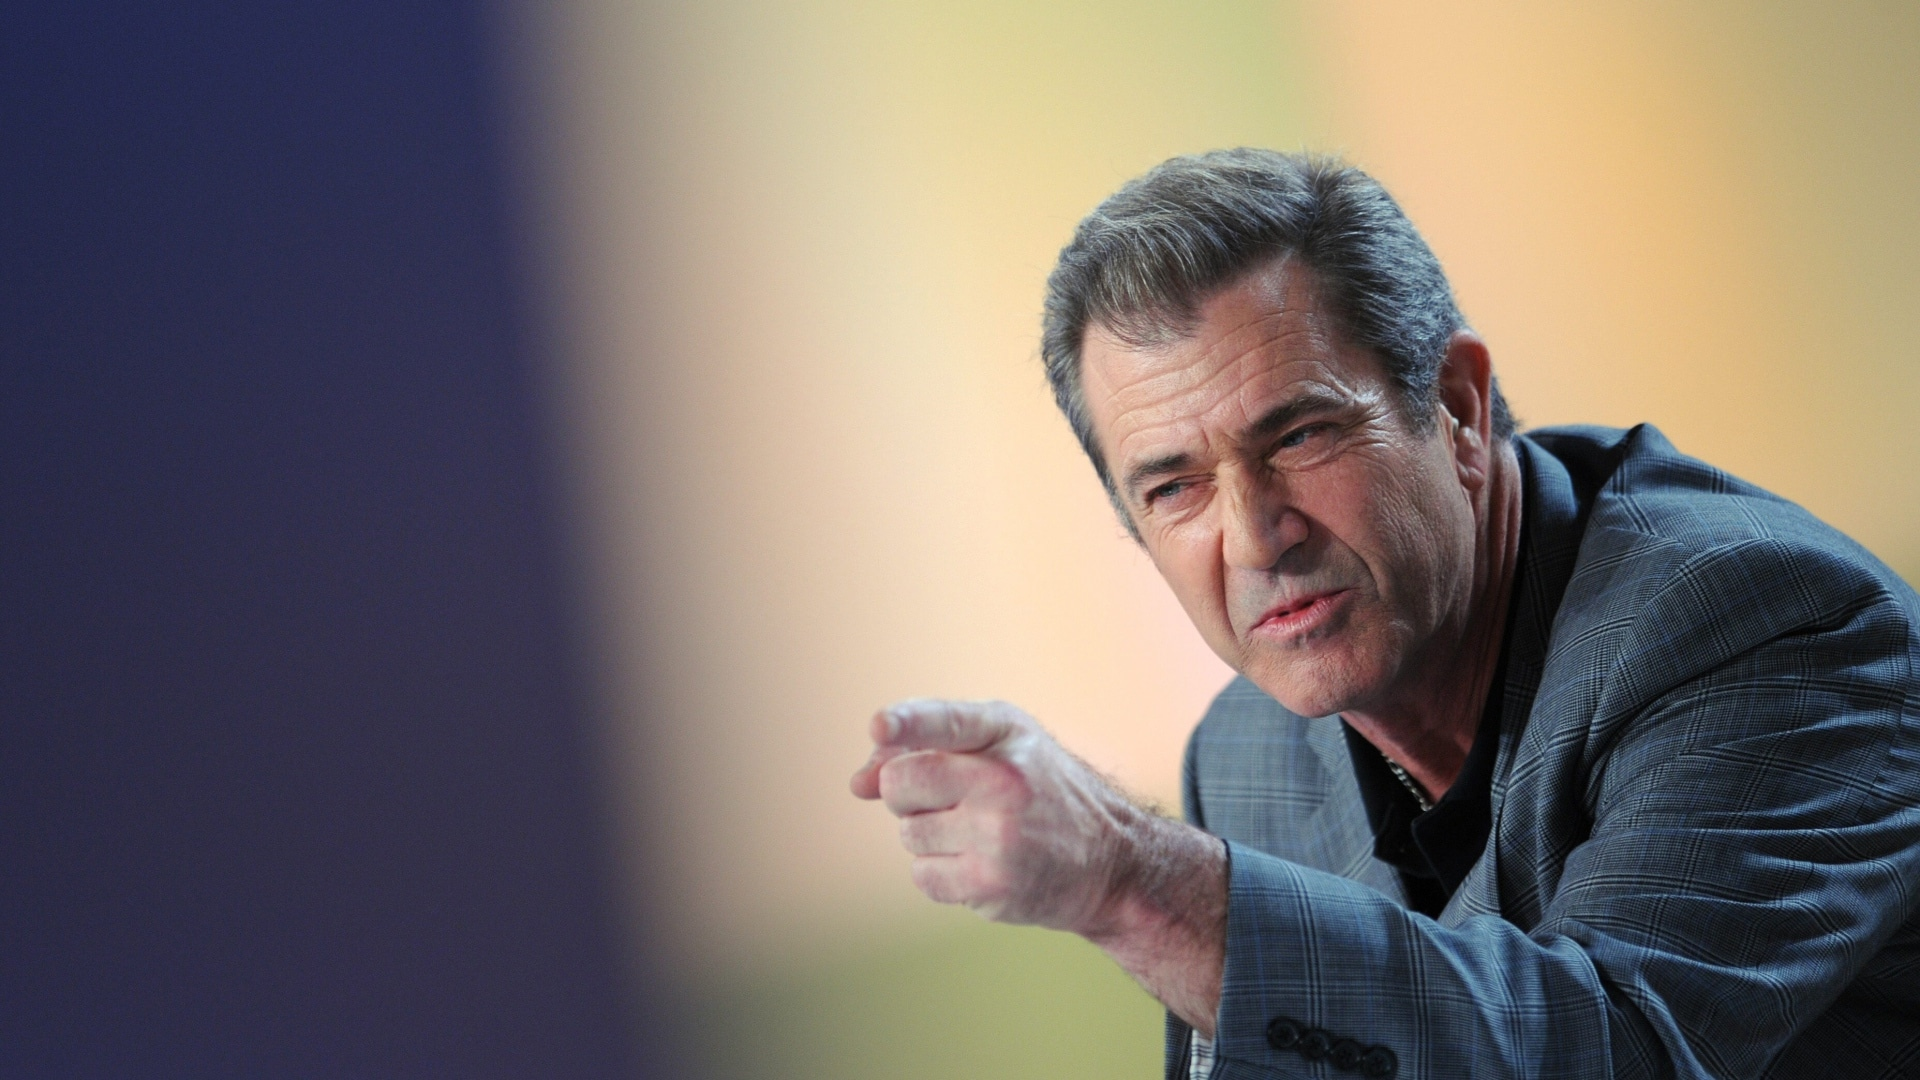 mel gibson wallpapers 27110 5187348